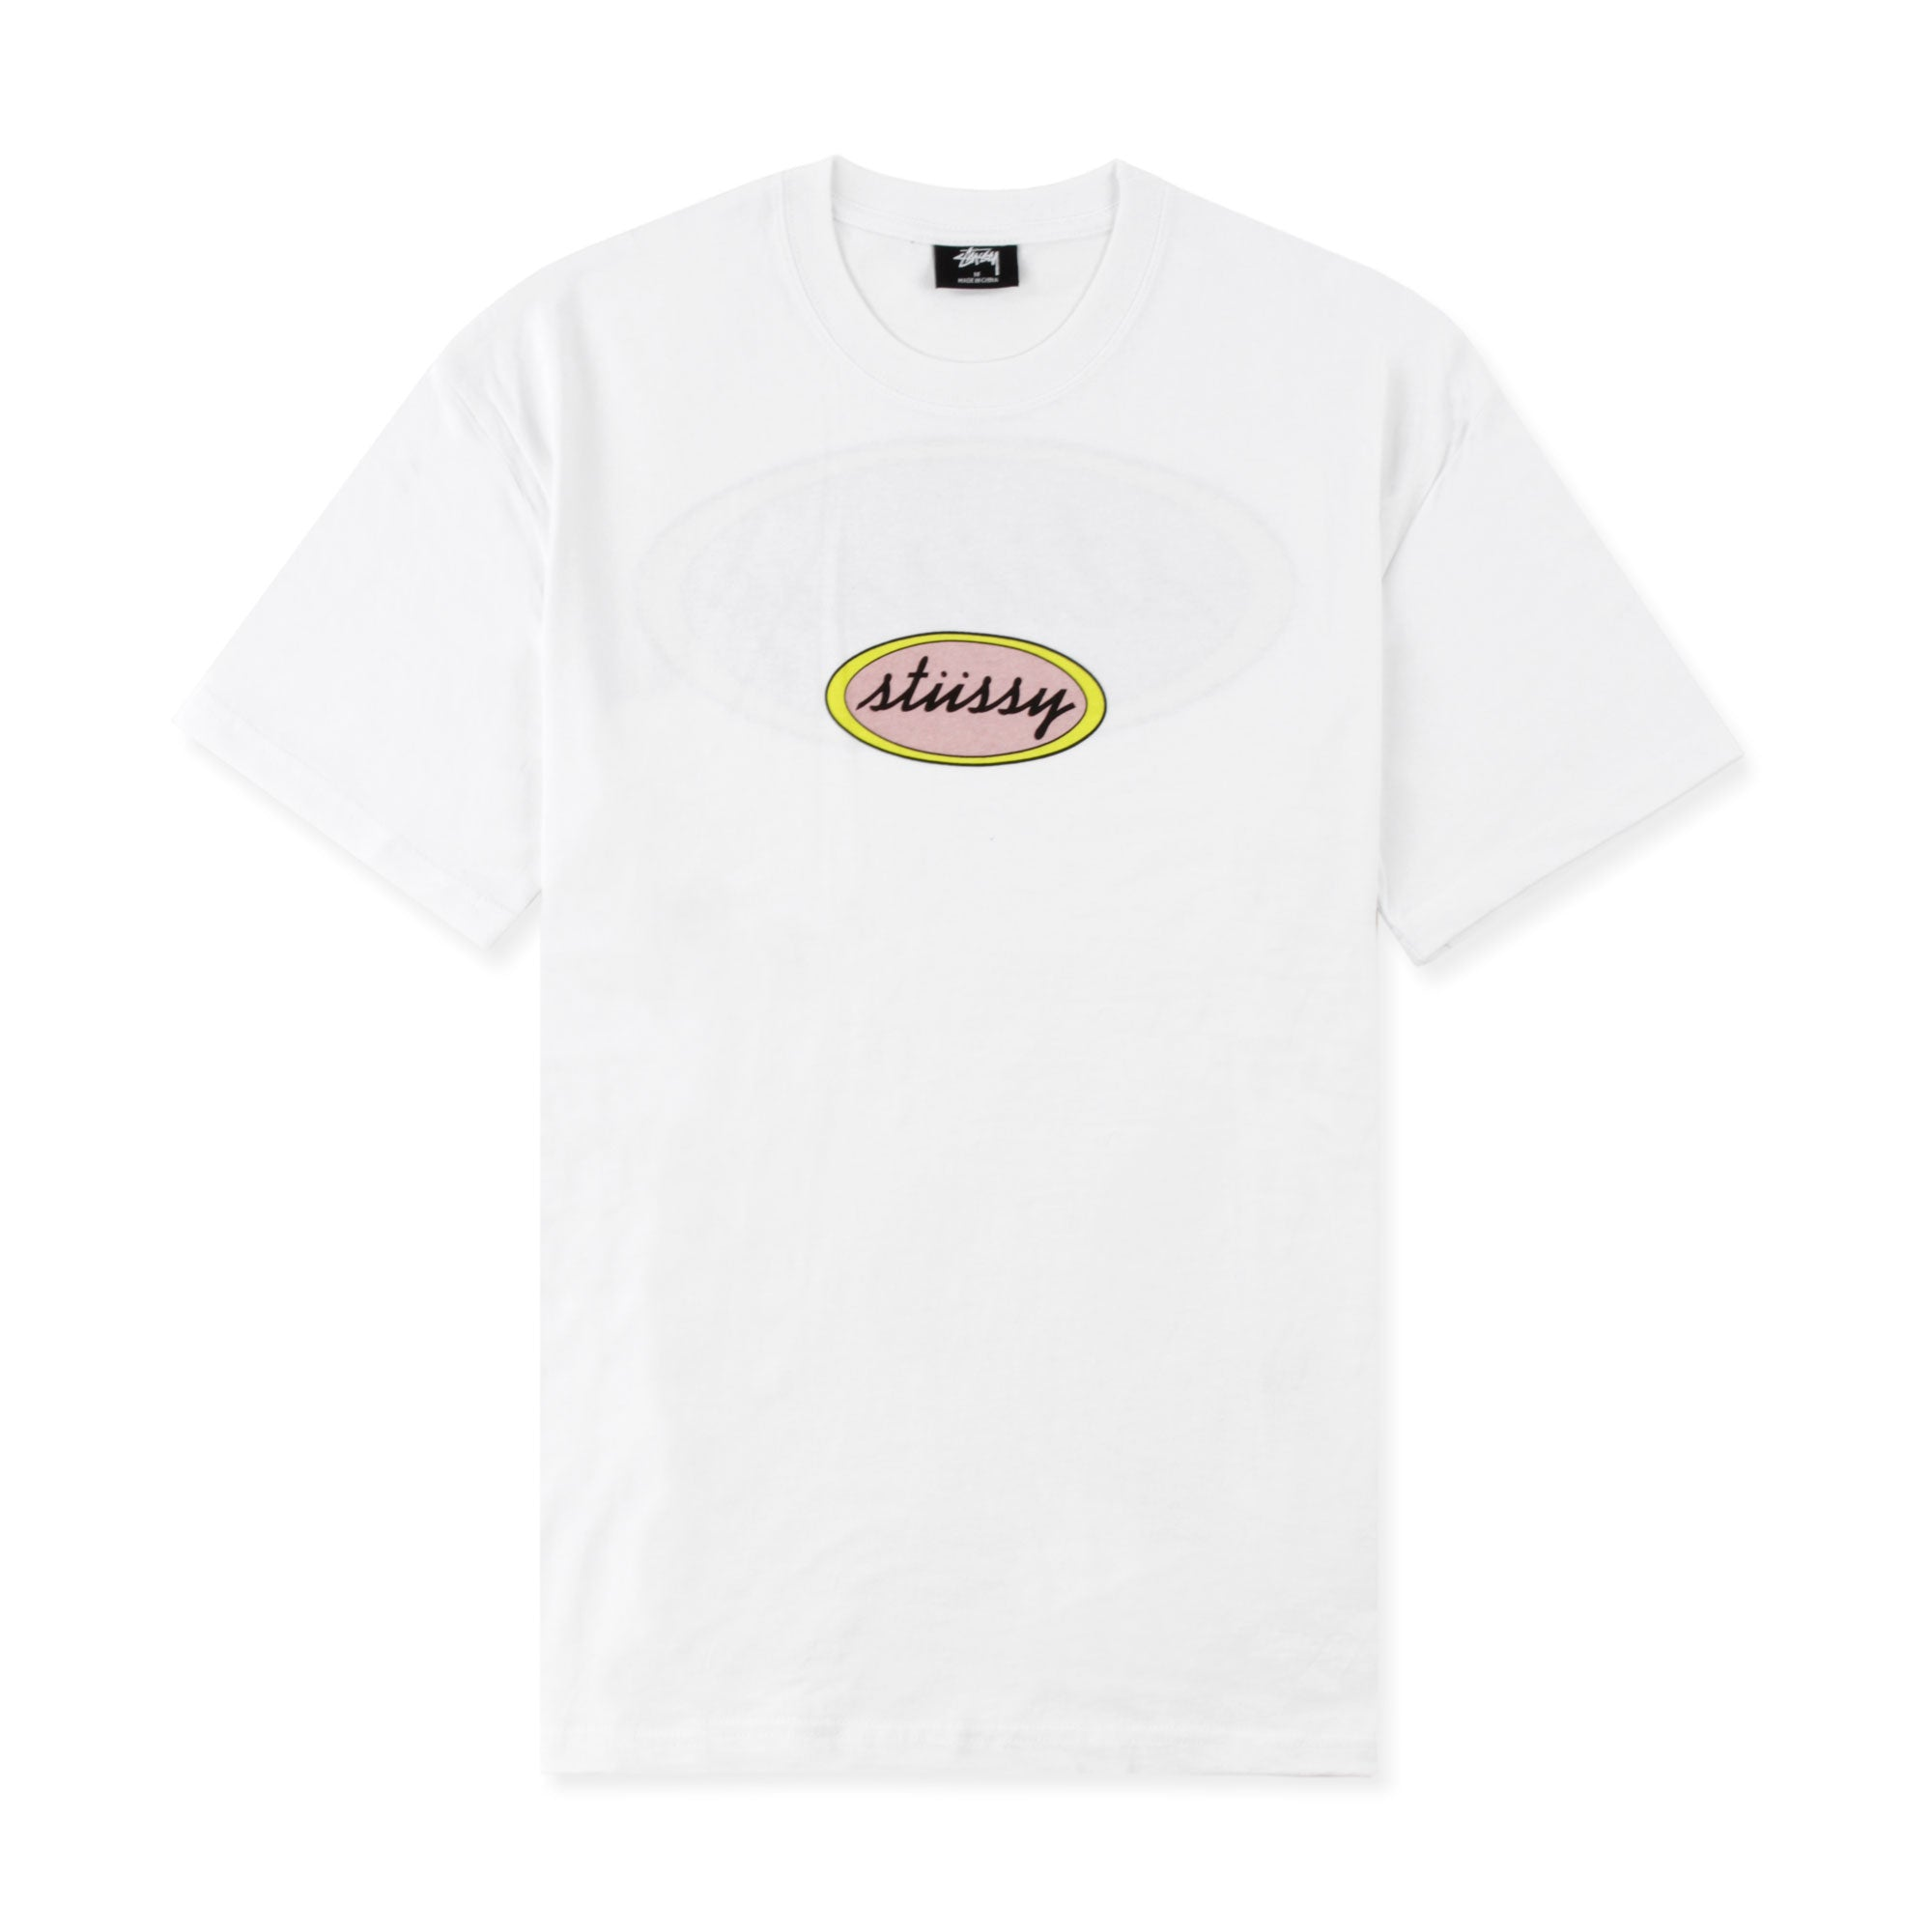 Stussy Oval Tee Product Photo #1